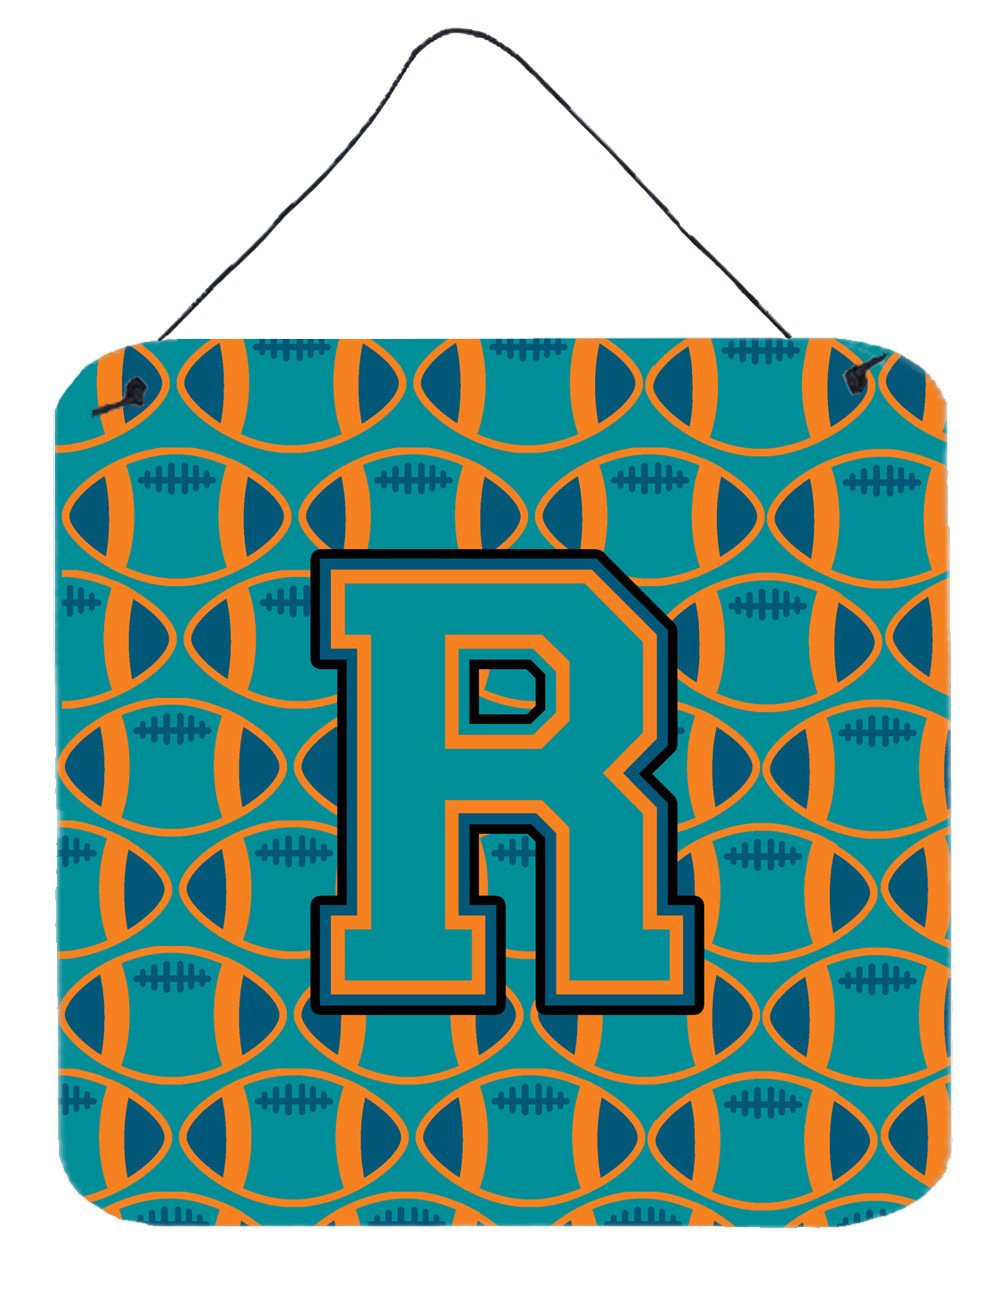 Letter R Football Aqua, Orange and Marine Blue Wall or Door Hanging Prints CJ1063-RDS66 by Caroline's Treasures